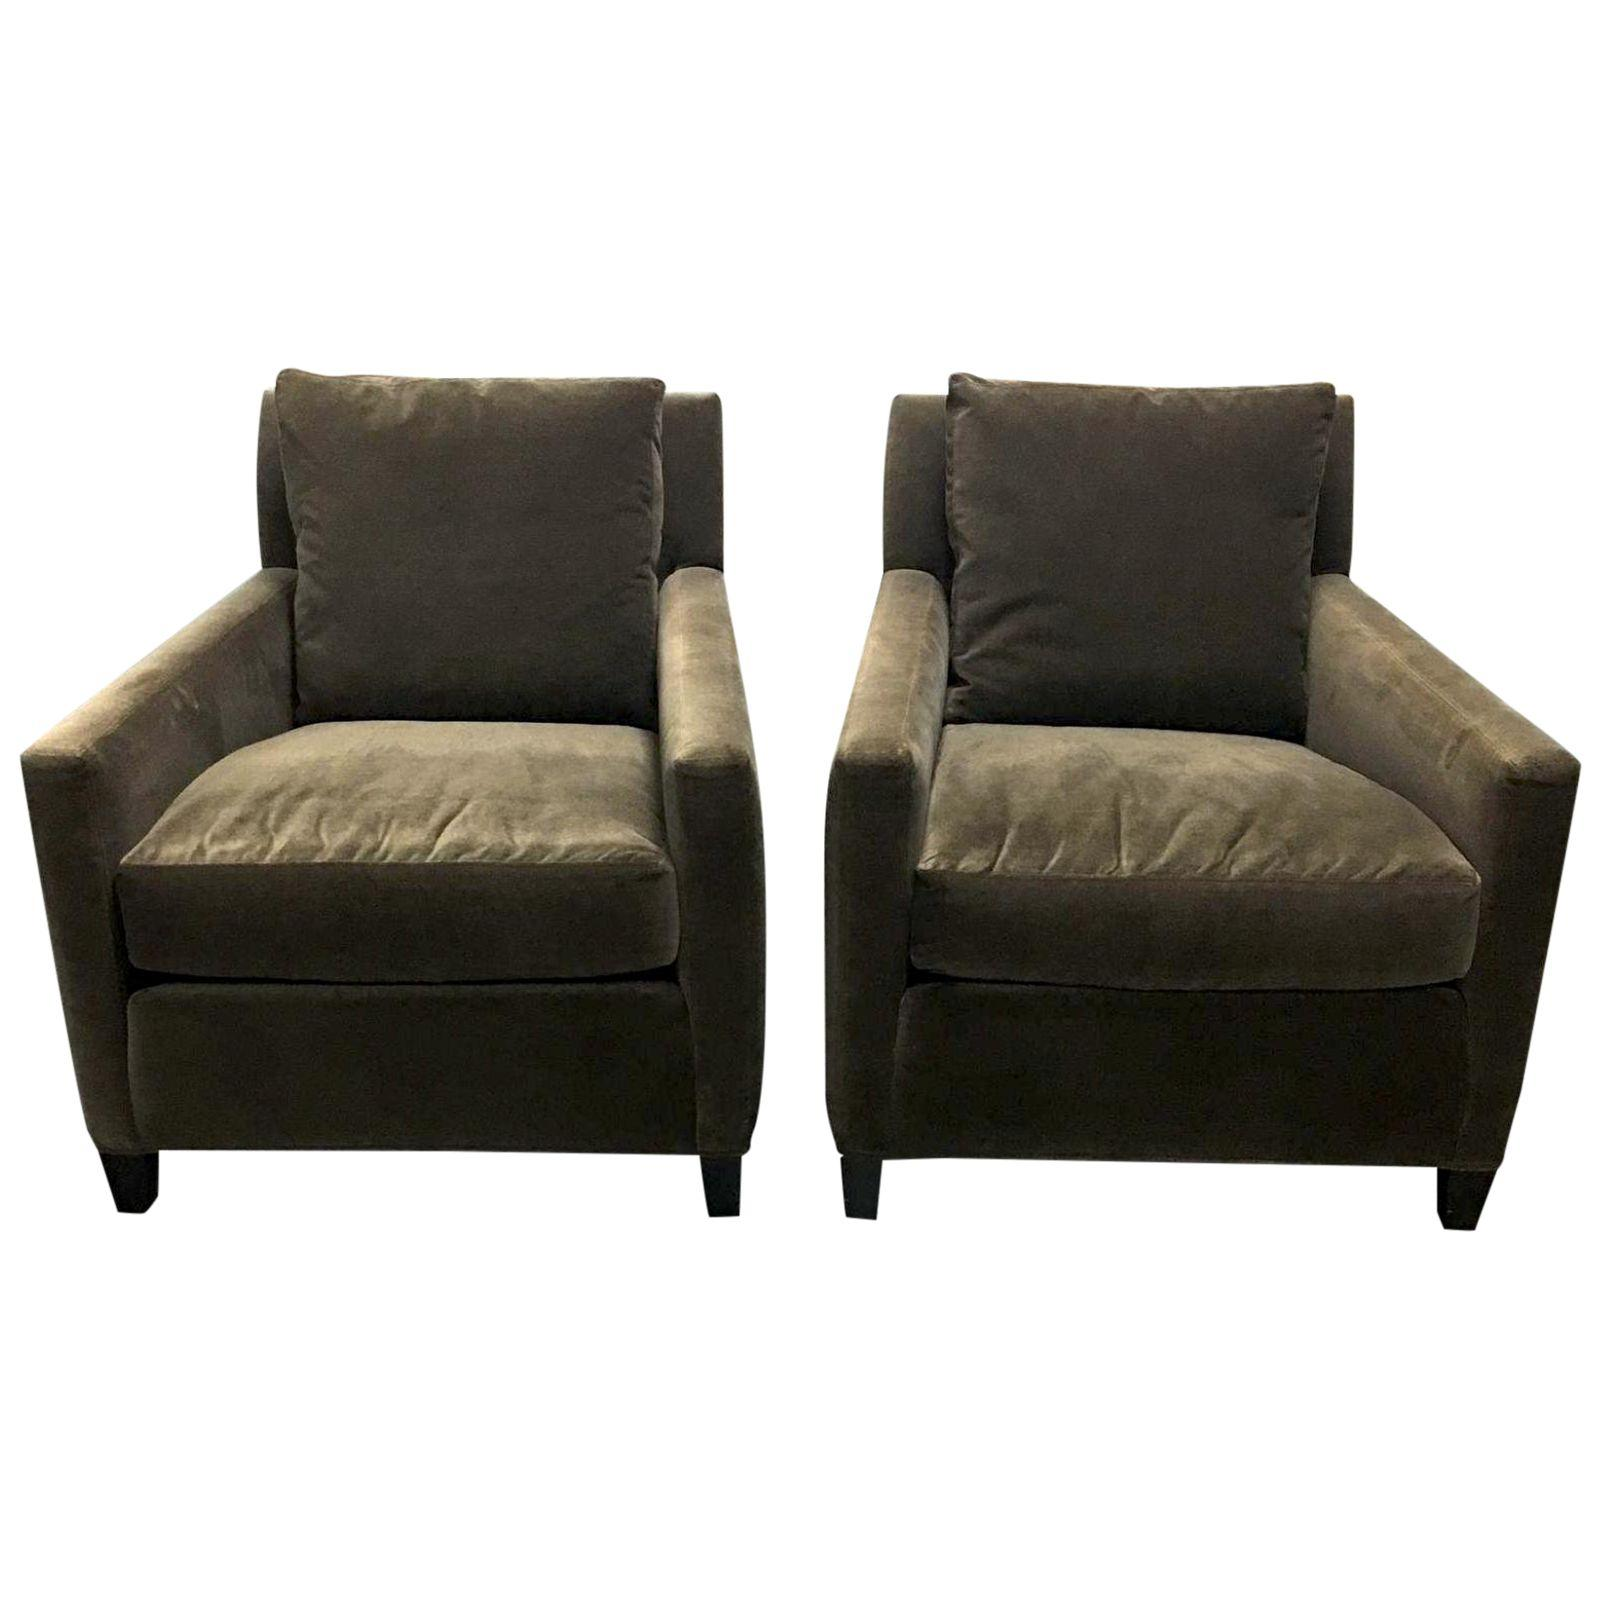 Pair Of Lees Industries Club Chairs, Original Price: $2,922.00